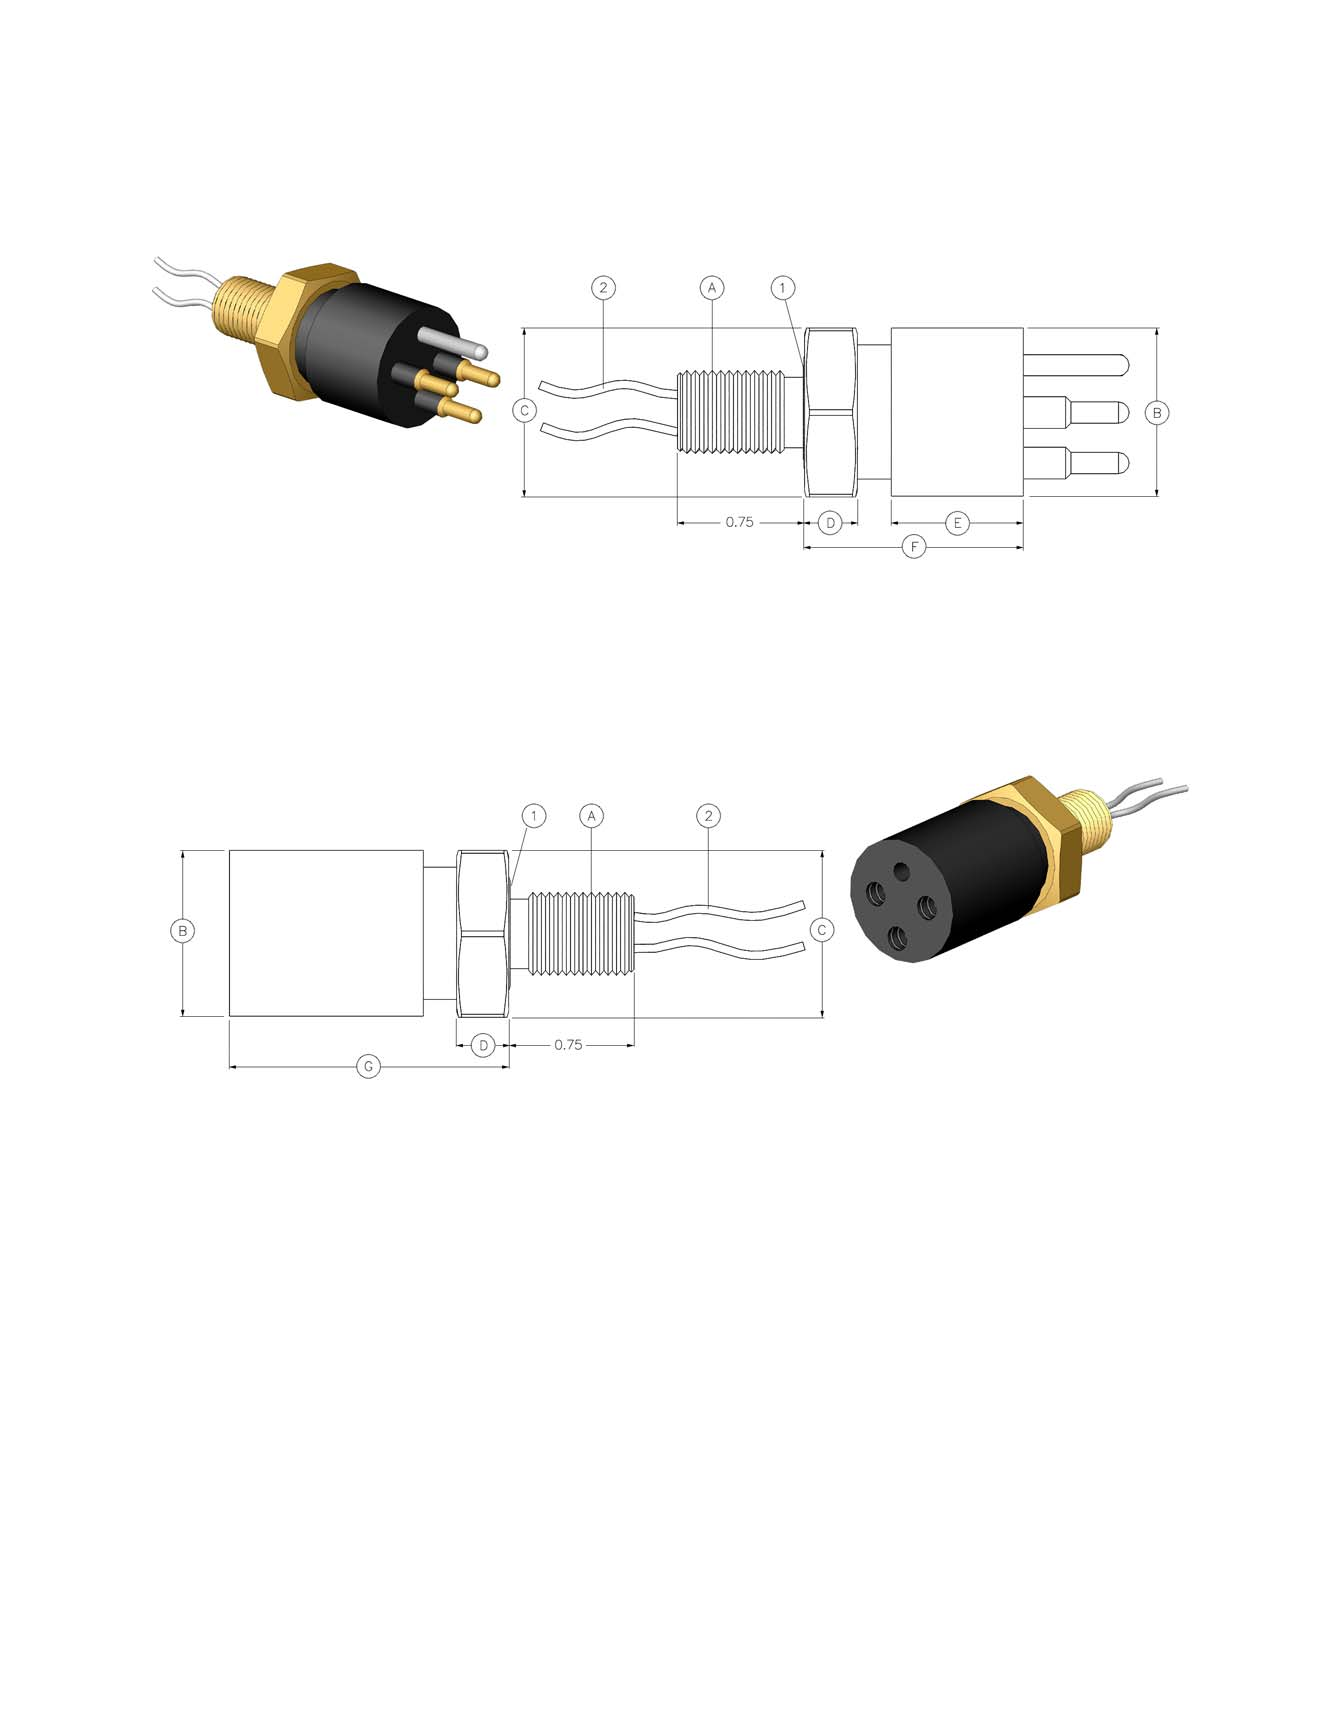 ^iijtbqround SERIES DIMENSION DETAILS AW-P-BC with Ground (w/g) ^iijtbq Round Bulkhead Connector Mates with AW-FS Dummy Connector: AW-FSD AW-S-BC with Ground (w/g) ^iijtbq Round Bulkhead Connector